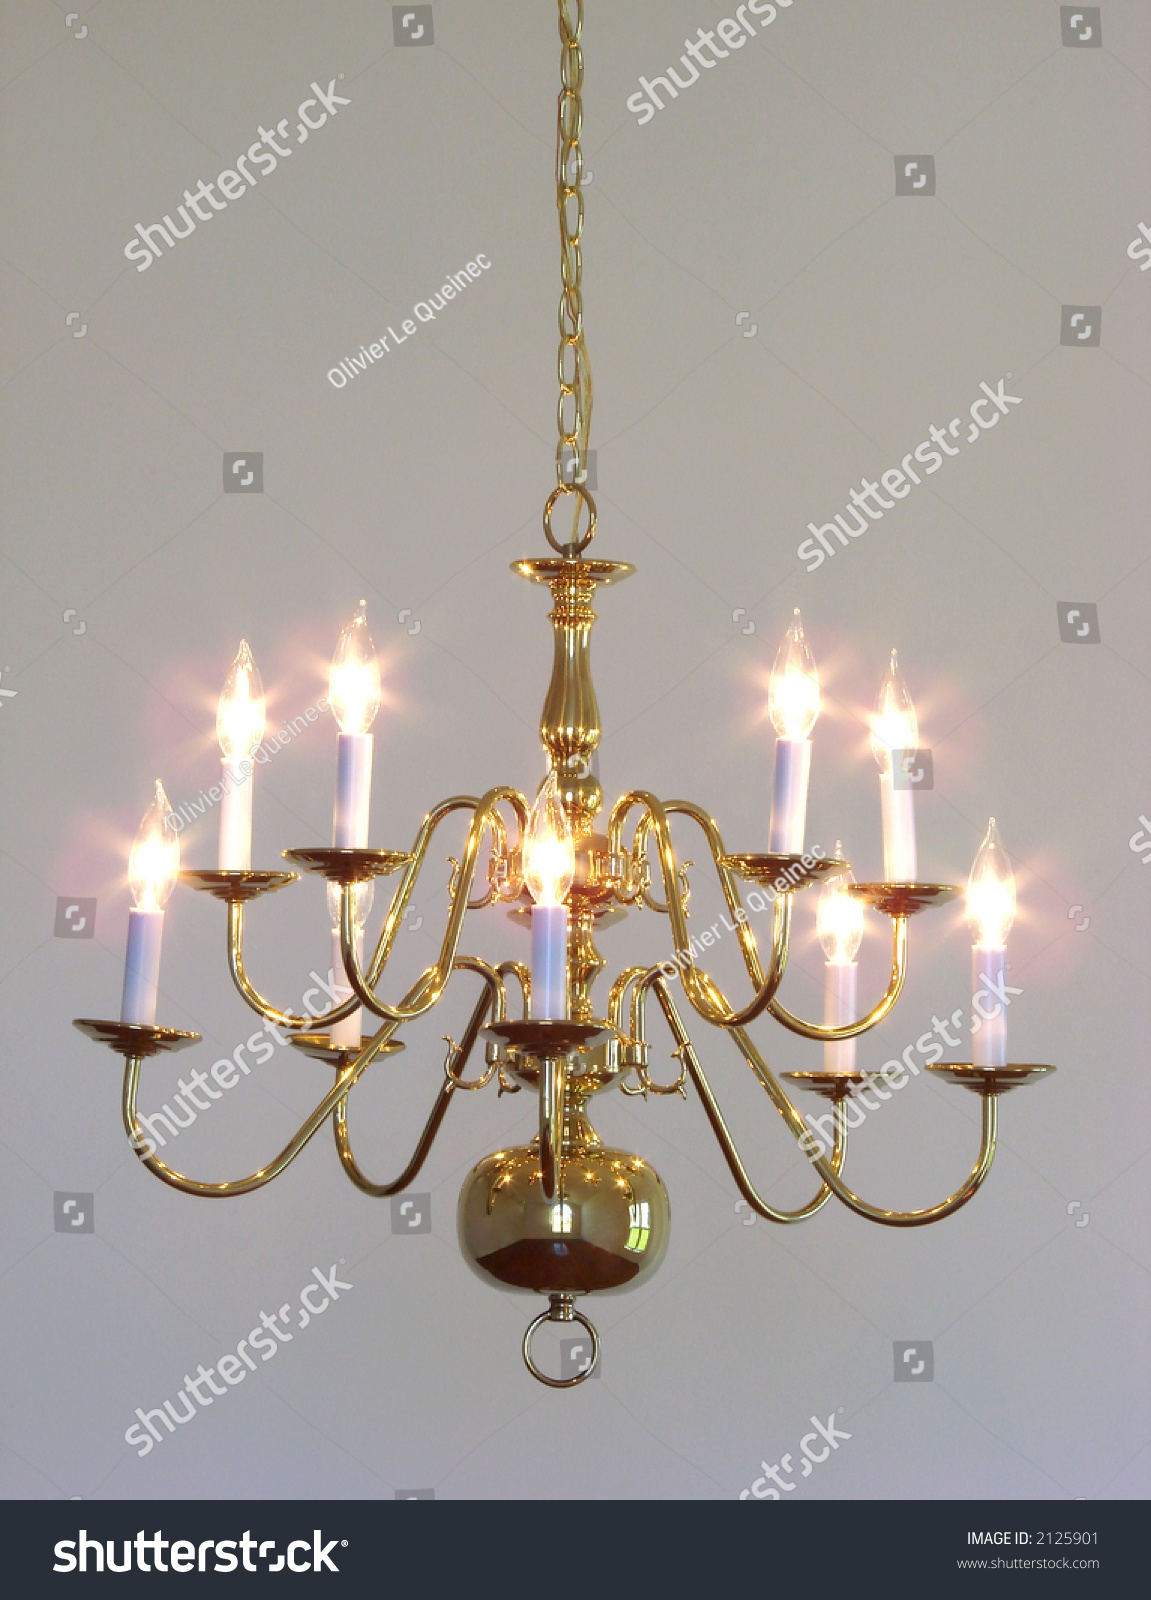 12 Best Collection Of Traditional Brass Chandeliers